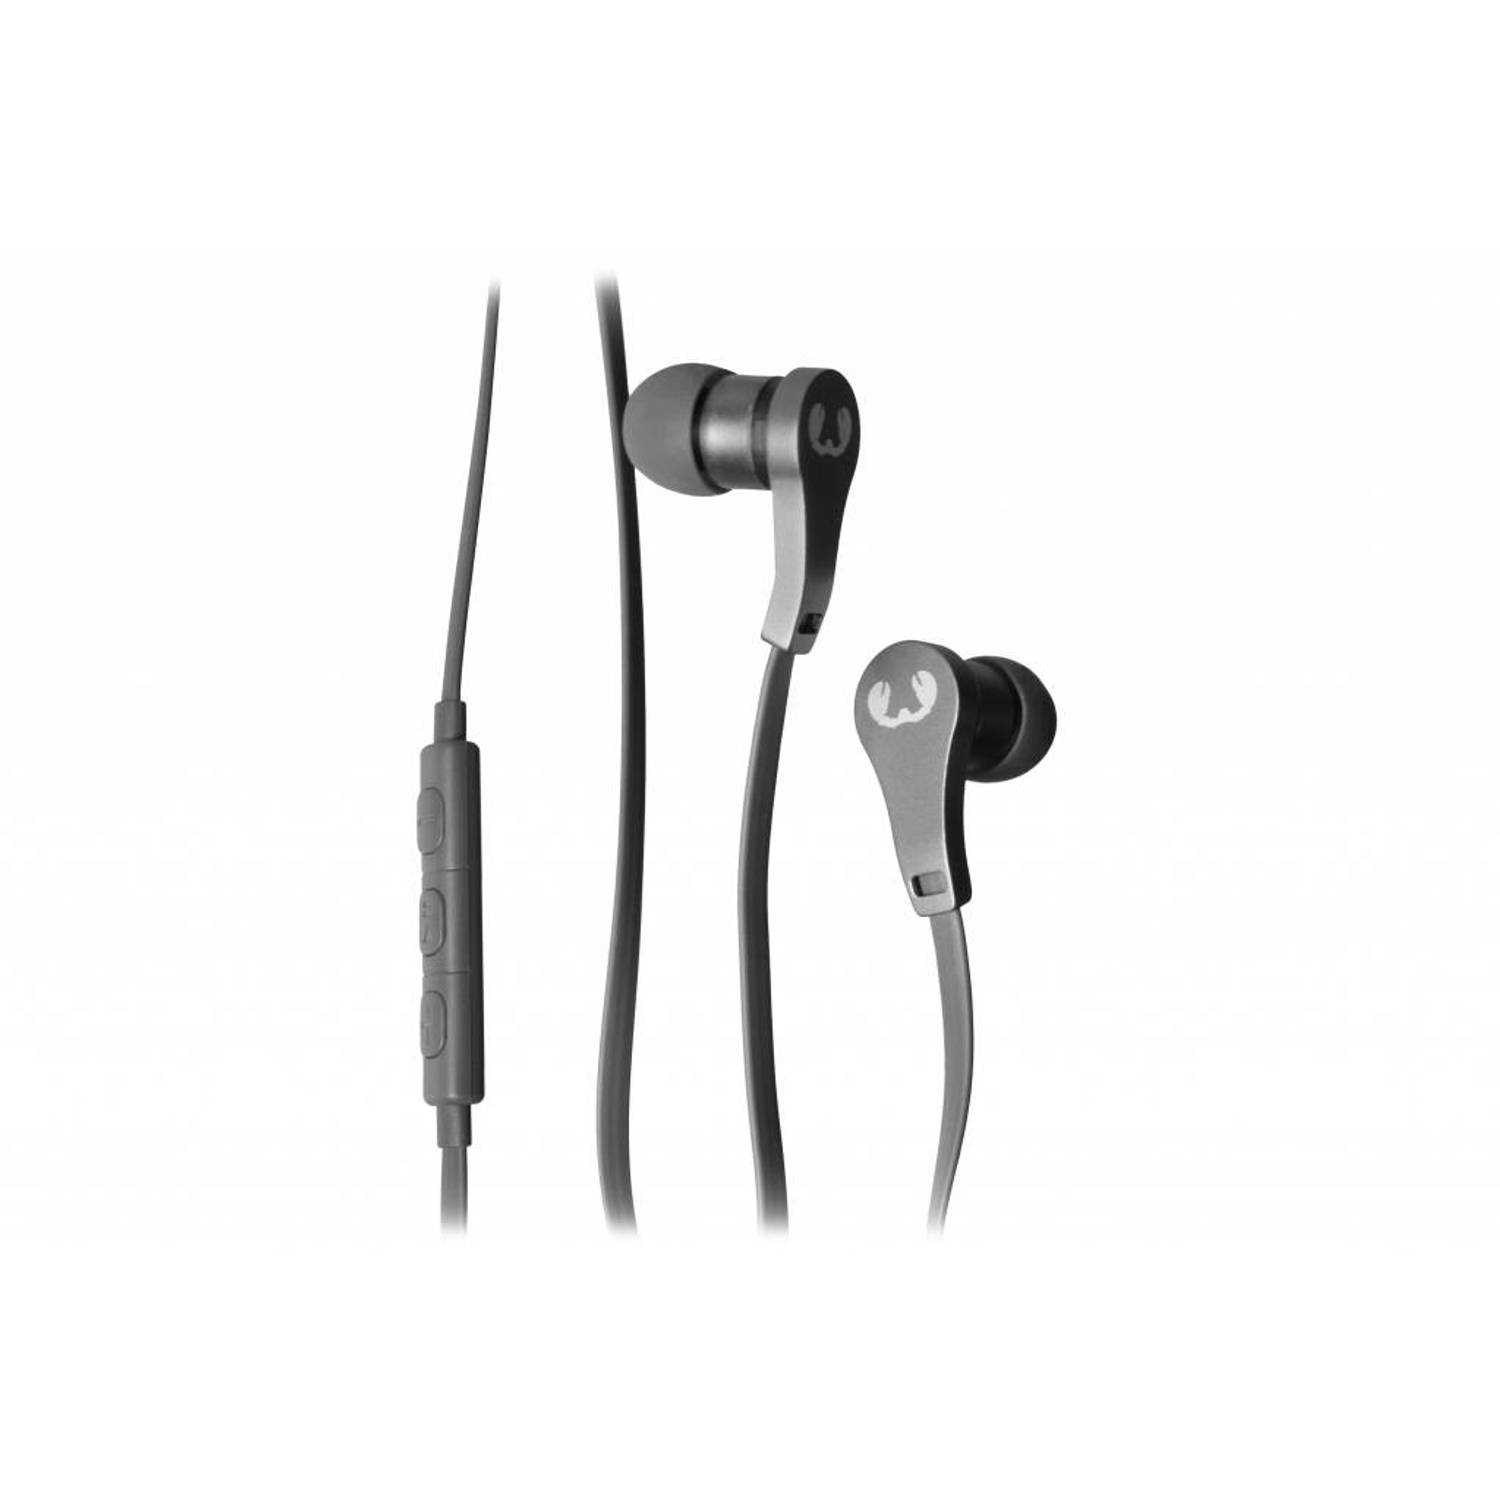 Donkergrijze Lace Earbuds